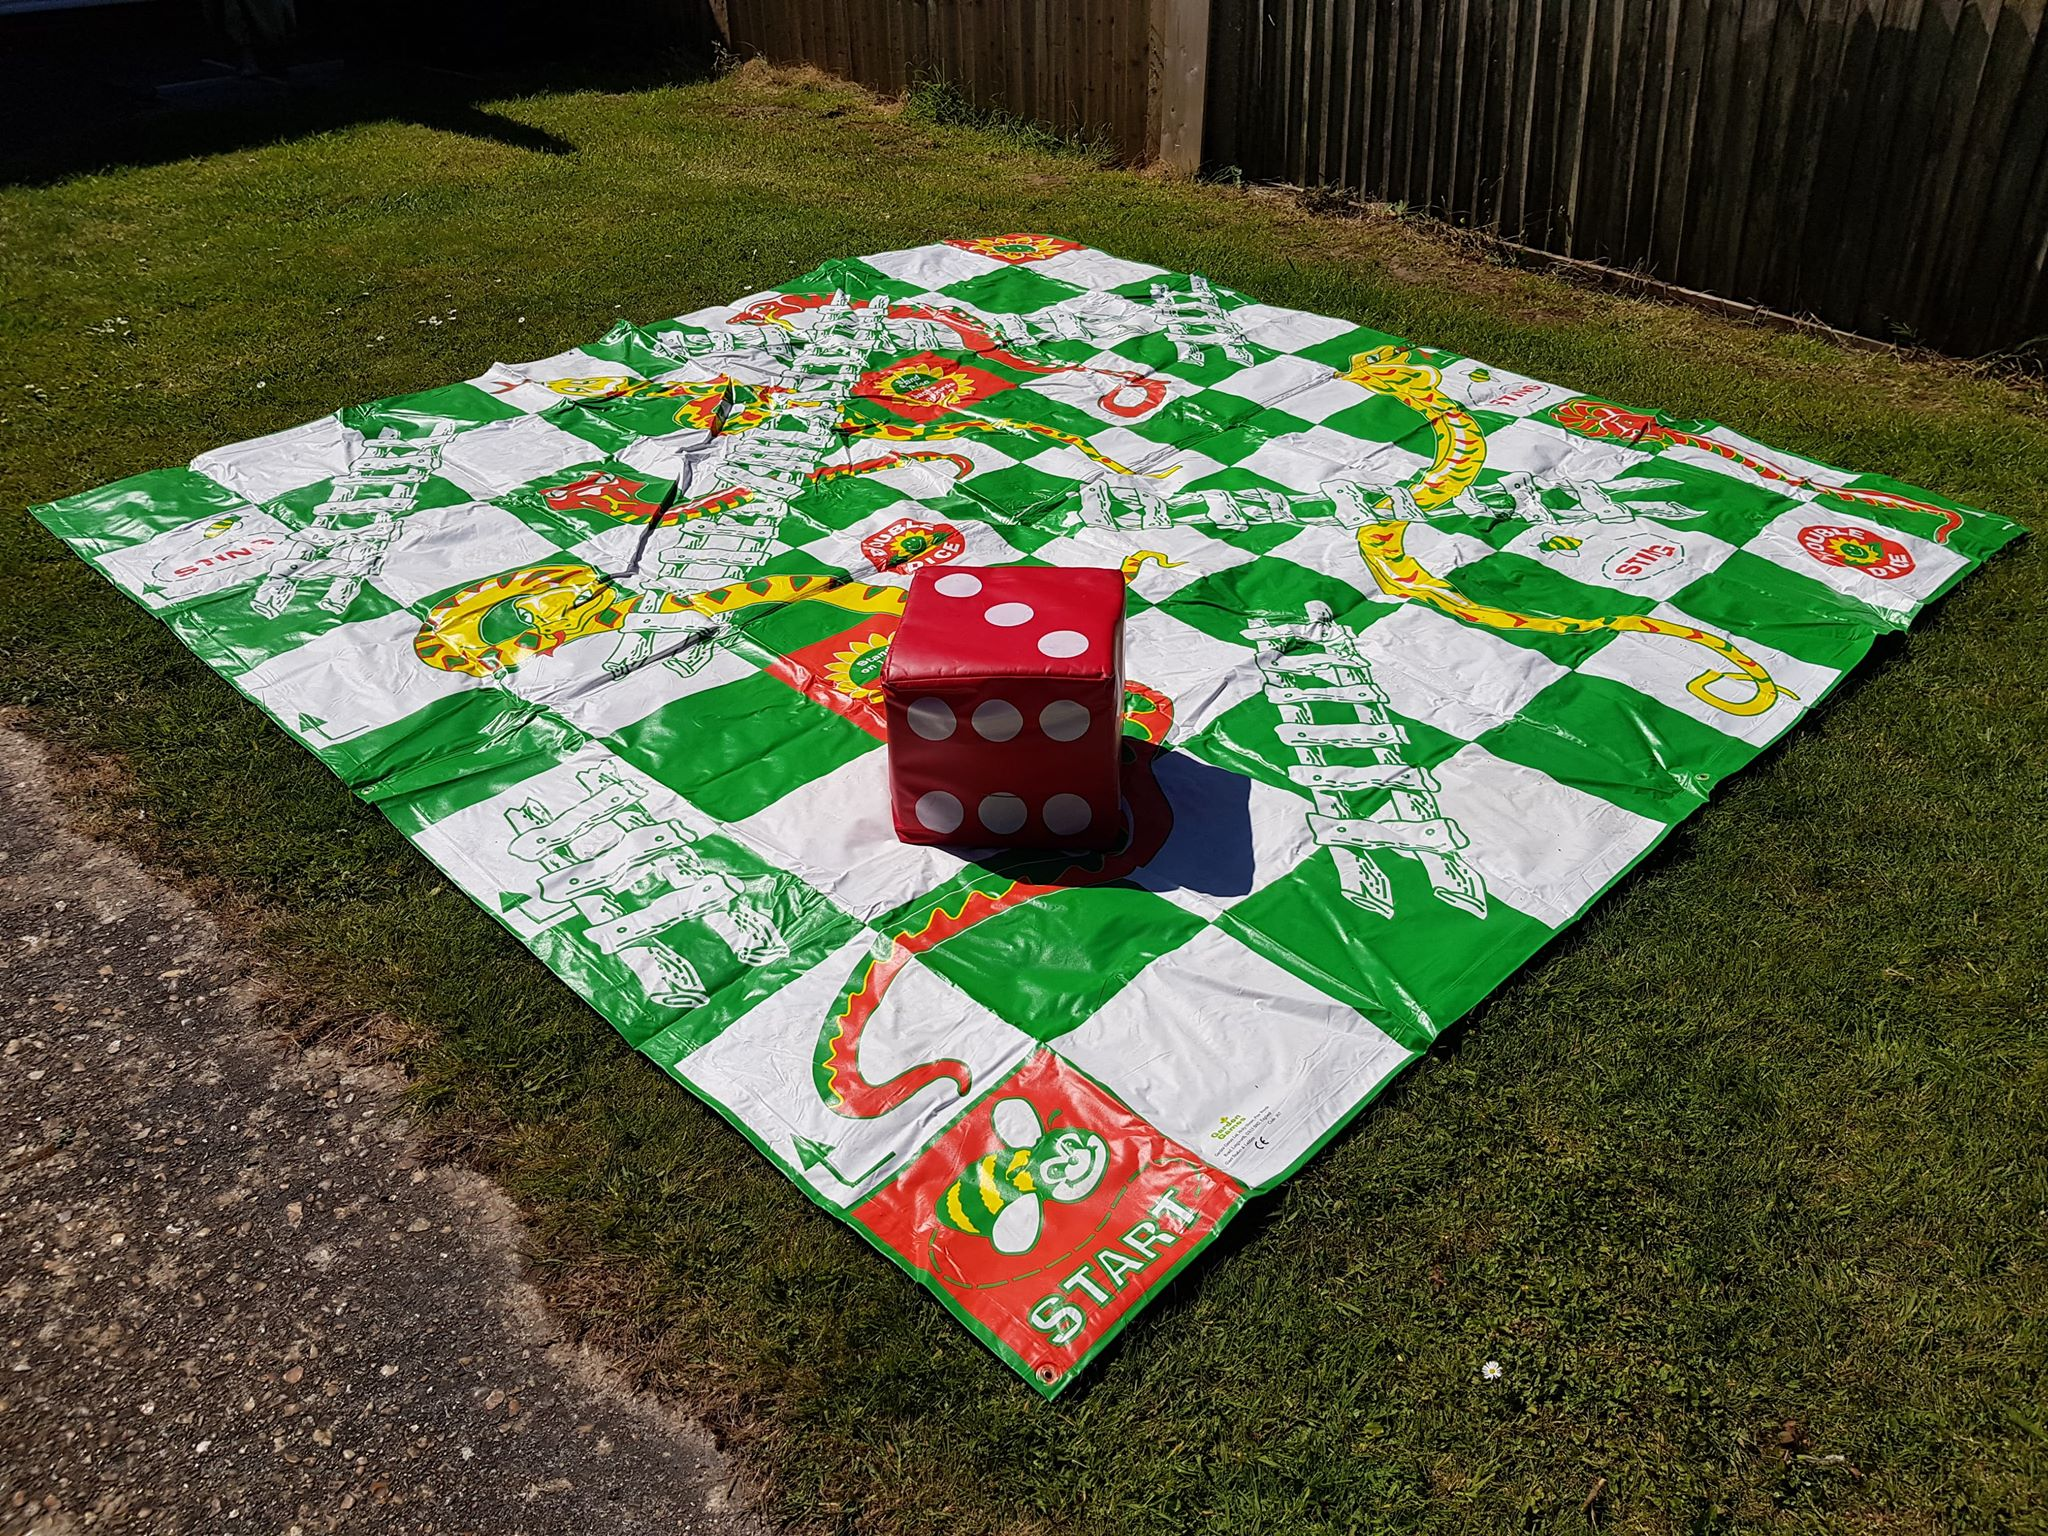 Giant Snakes & Ladders 3mx3m